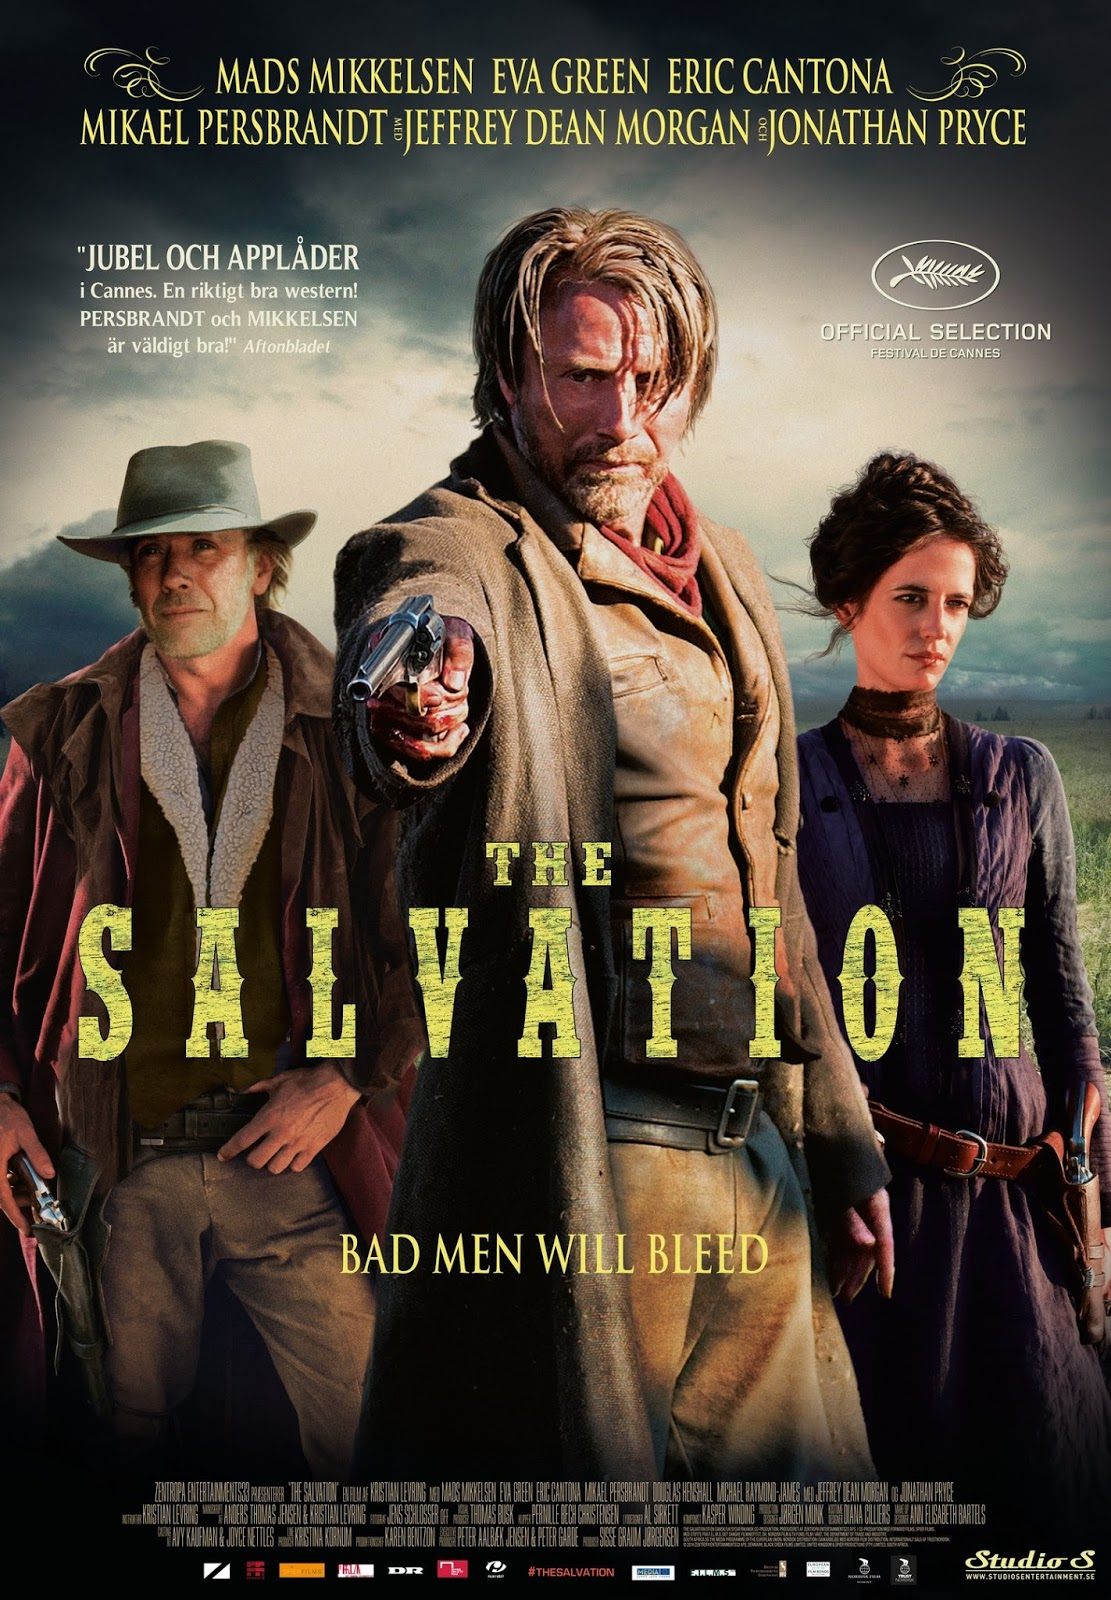 FAR WEST: THE SALVATION (2014)